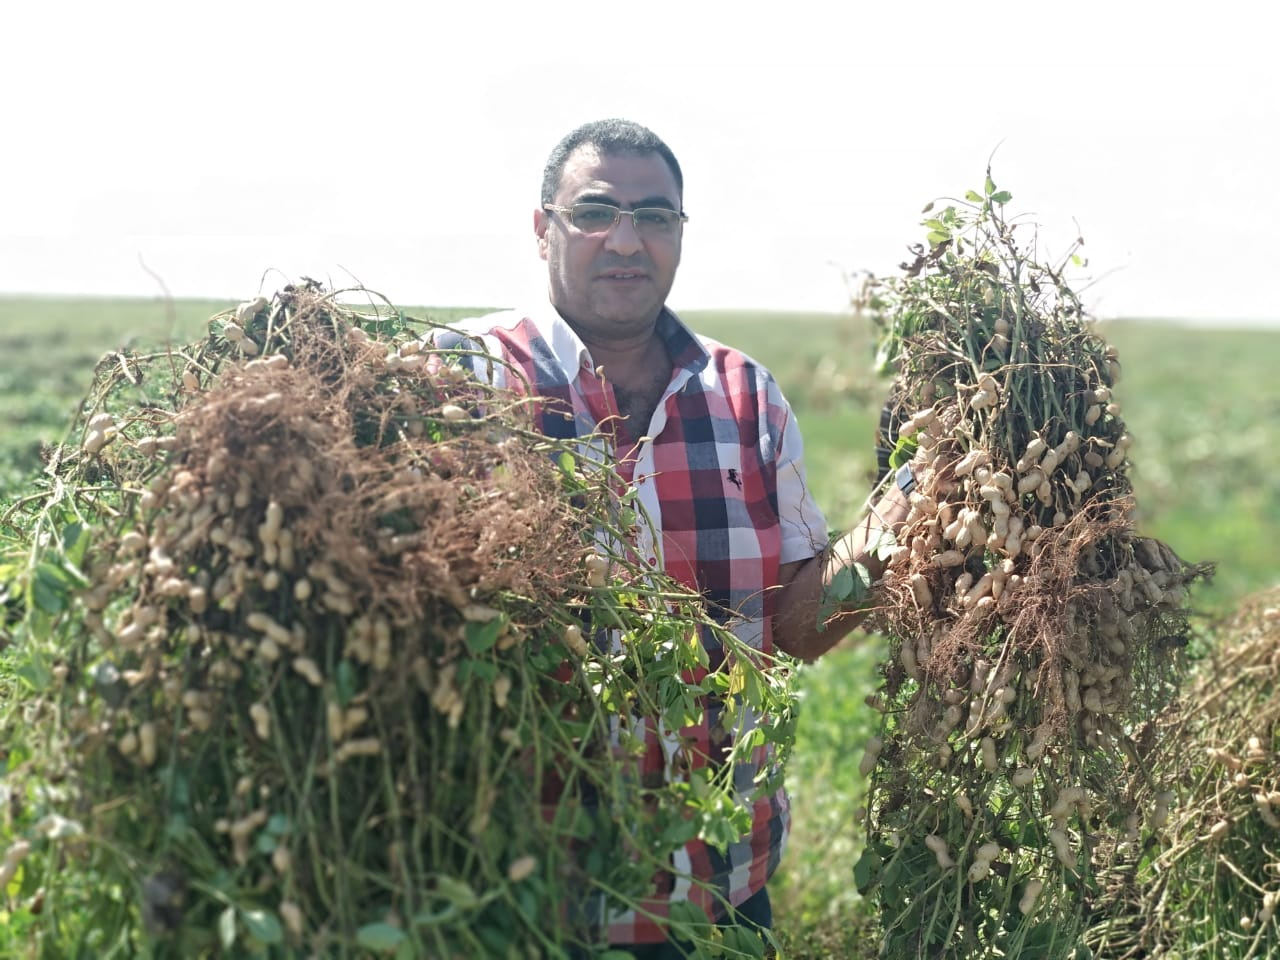 Egyptian Switcher Union for Agricultural Development has developed an organic pesticide that safely protects crops |The Switchers